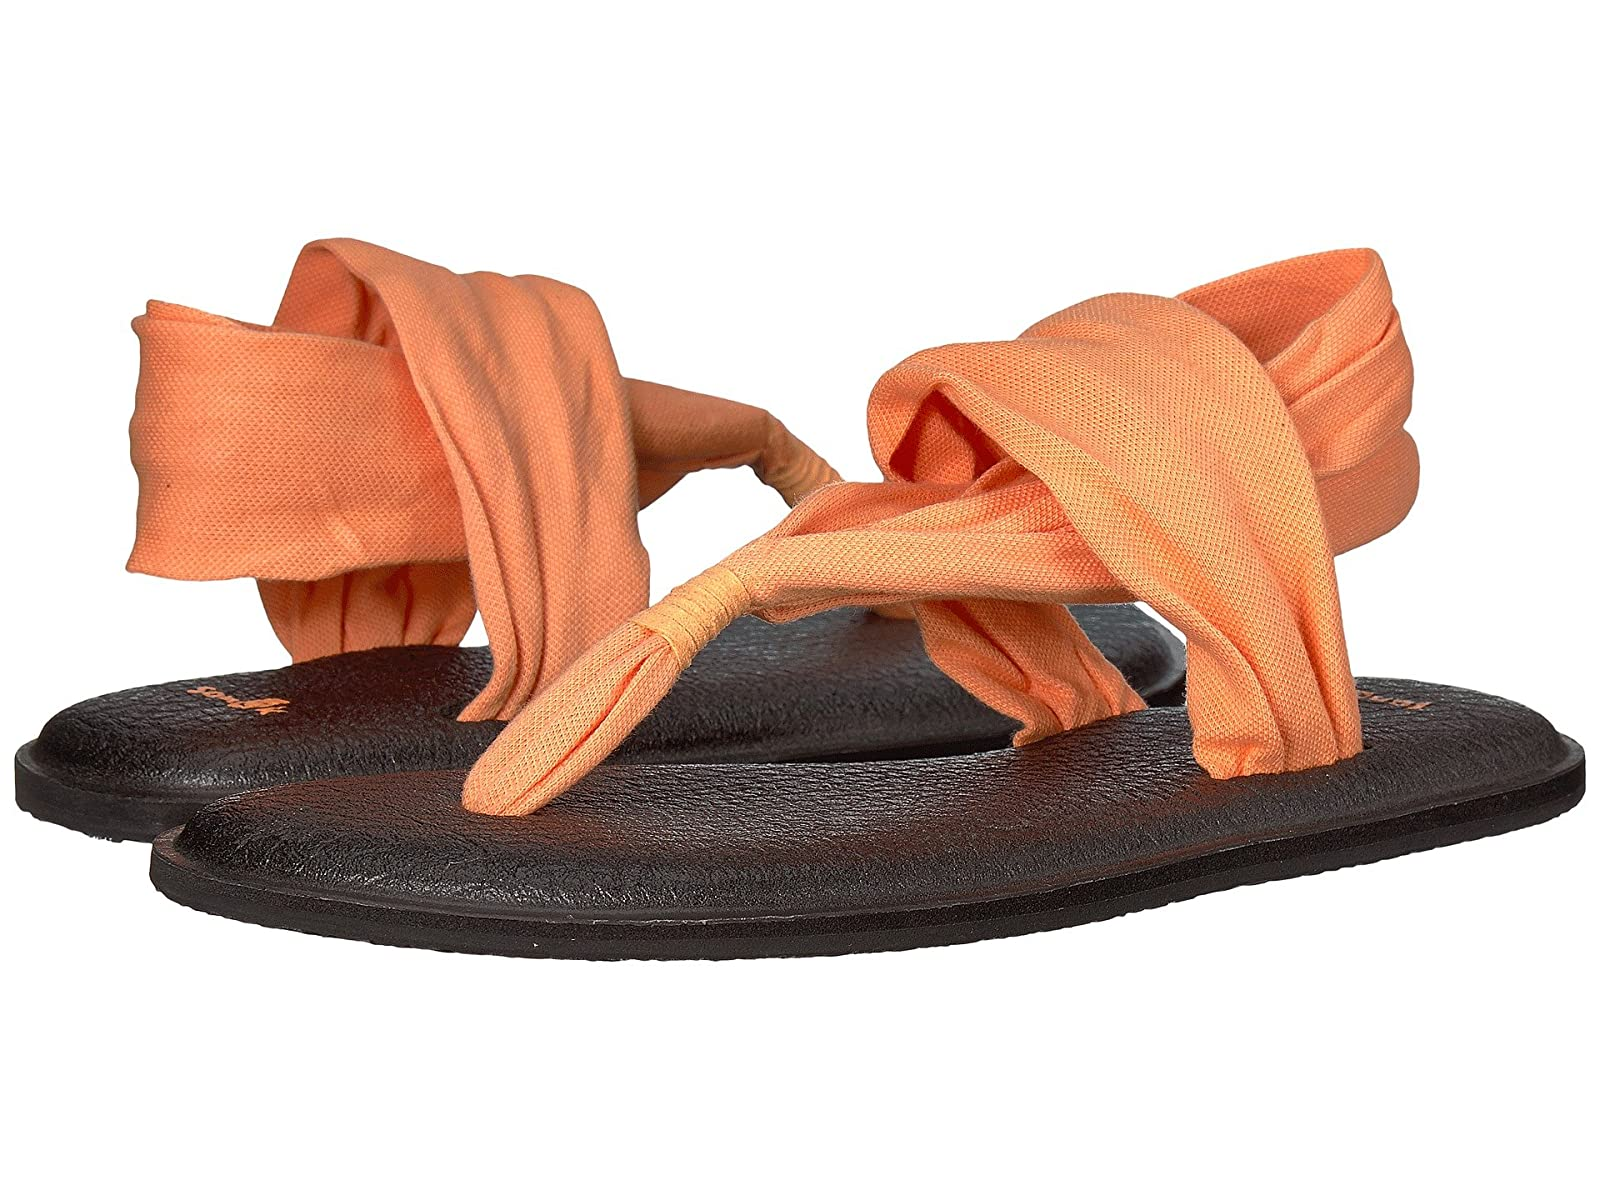 Sanuk Yoga Sling 2Atmospheric grades have affordable shoes